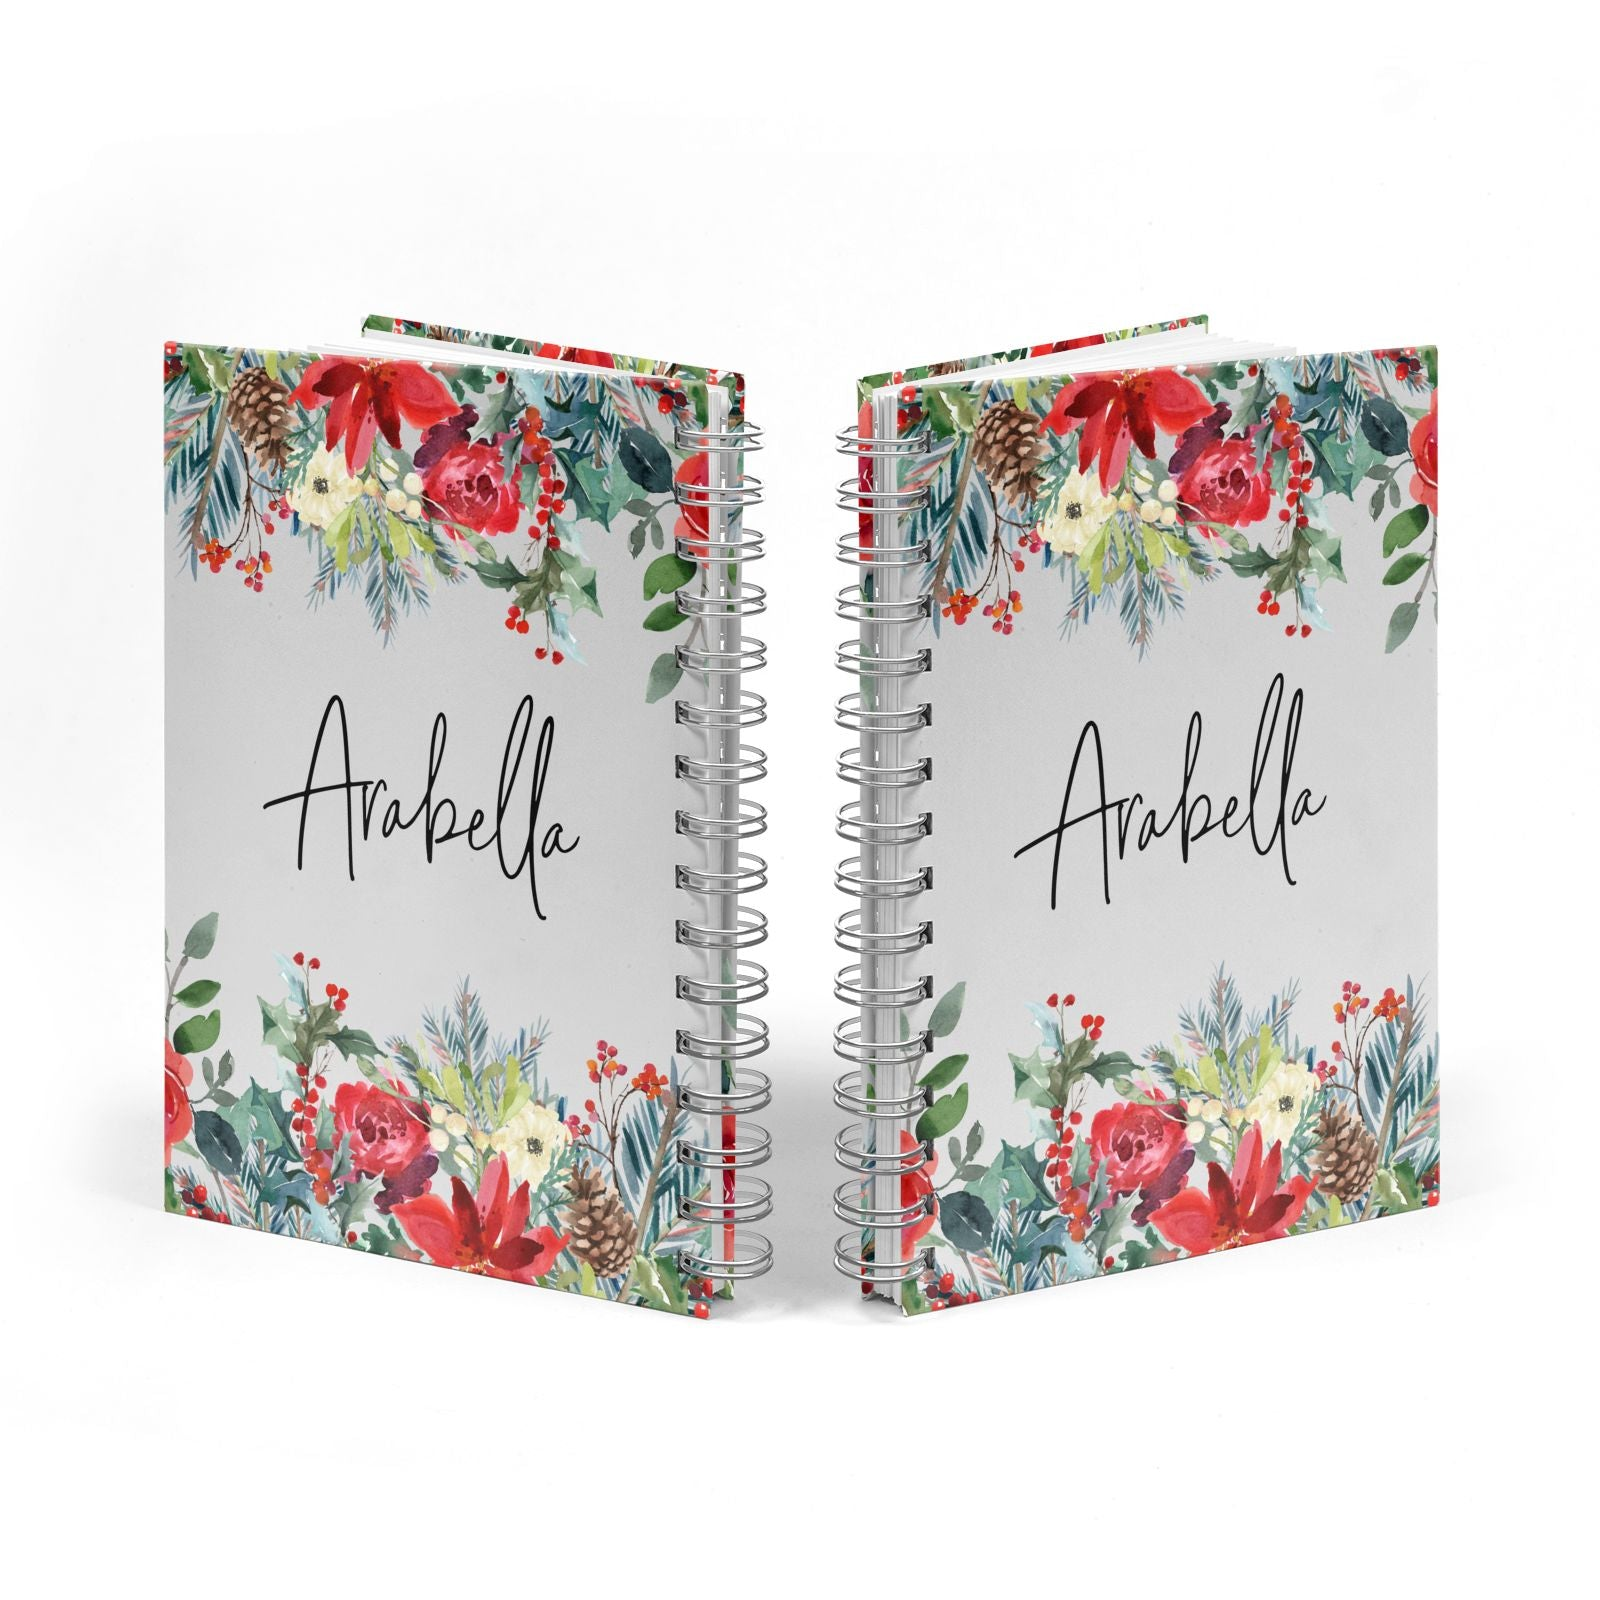 Personalised Floral Winter Arrangement Notebook with Silver Coil Spine View